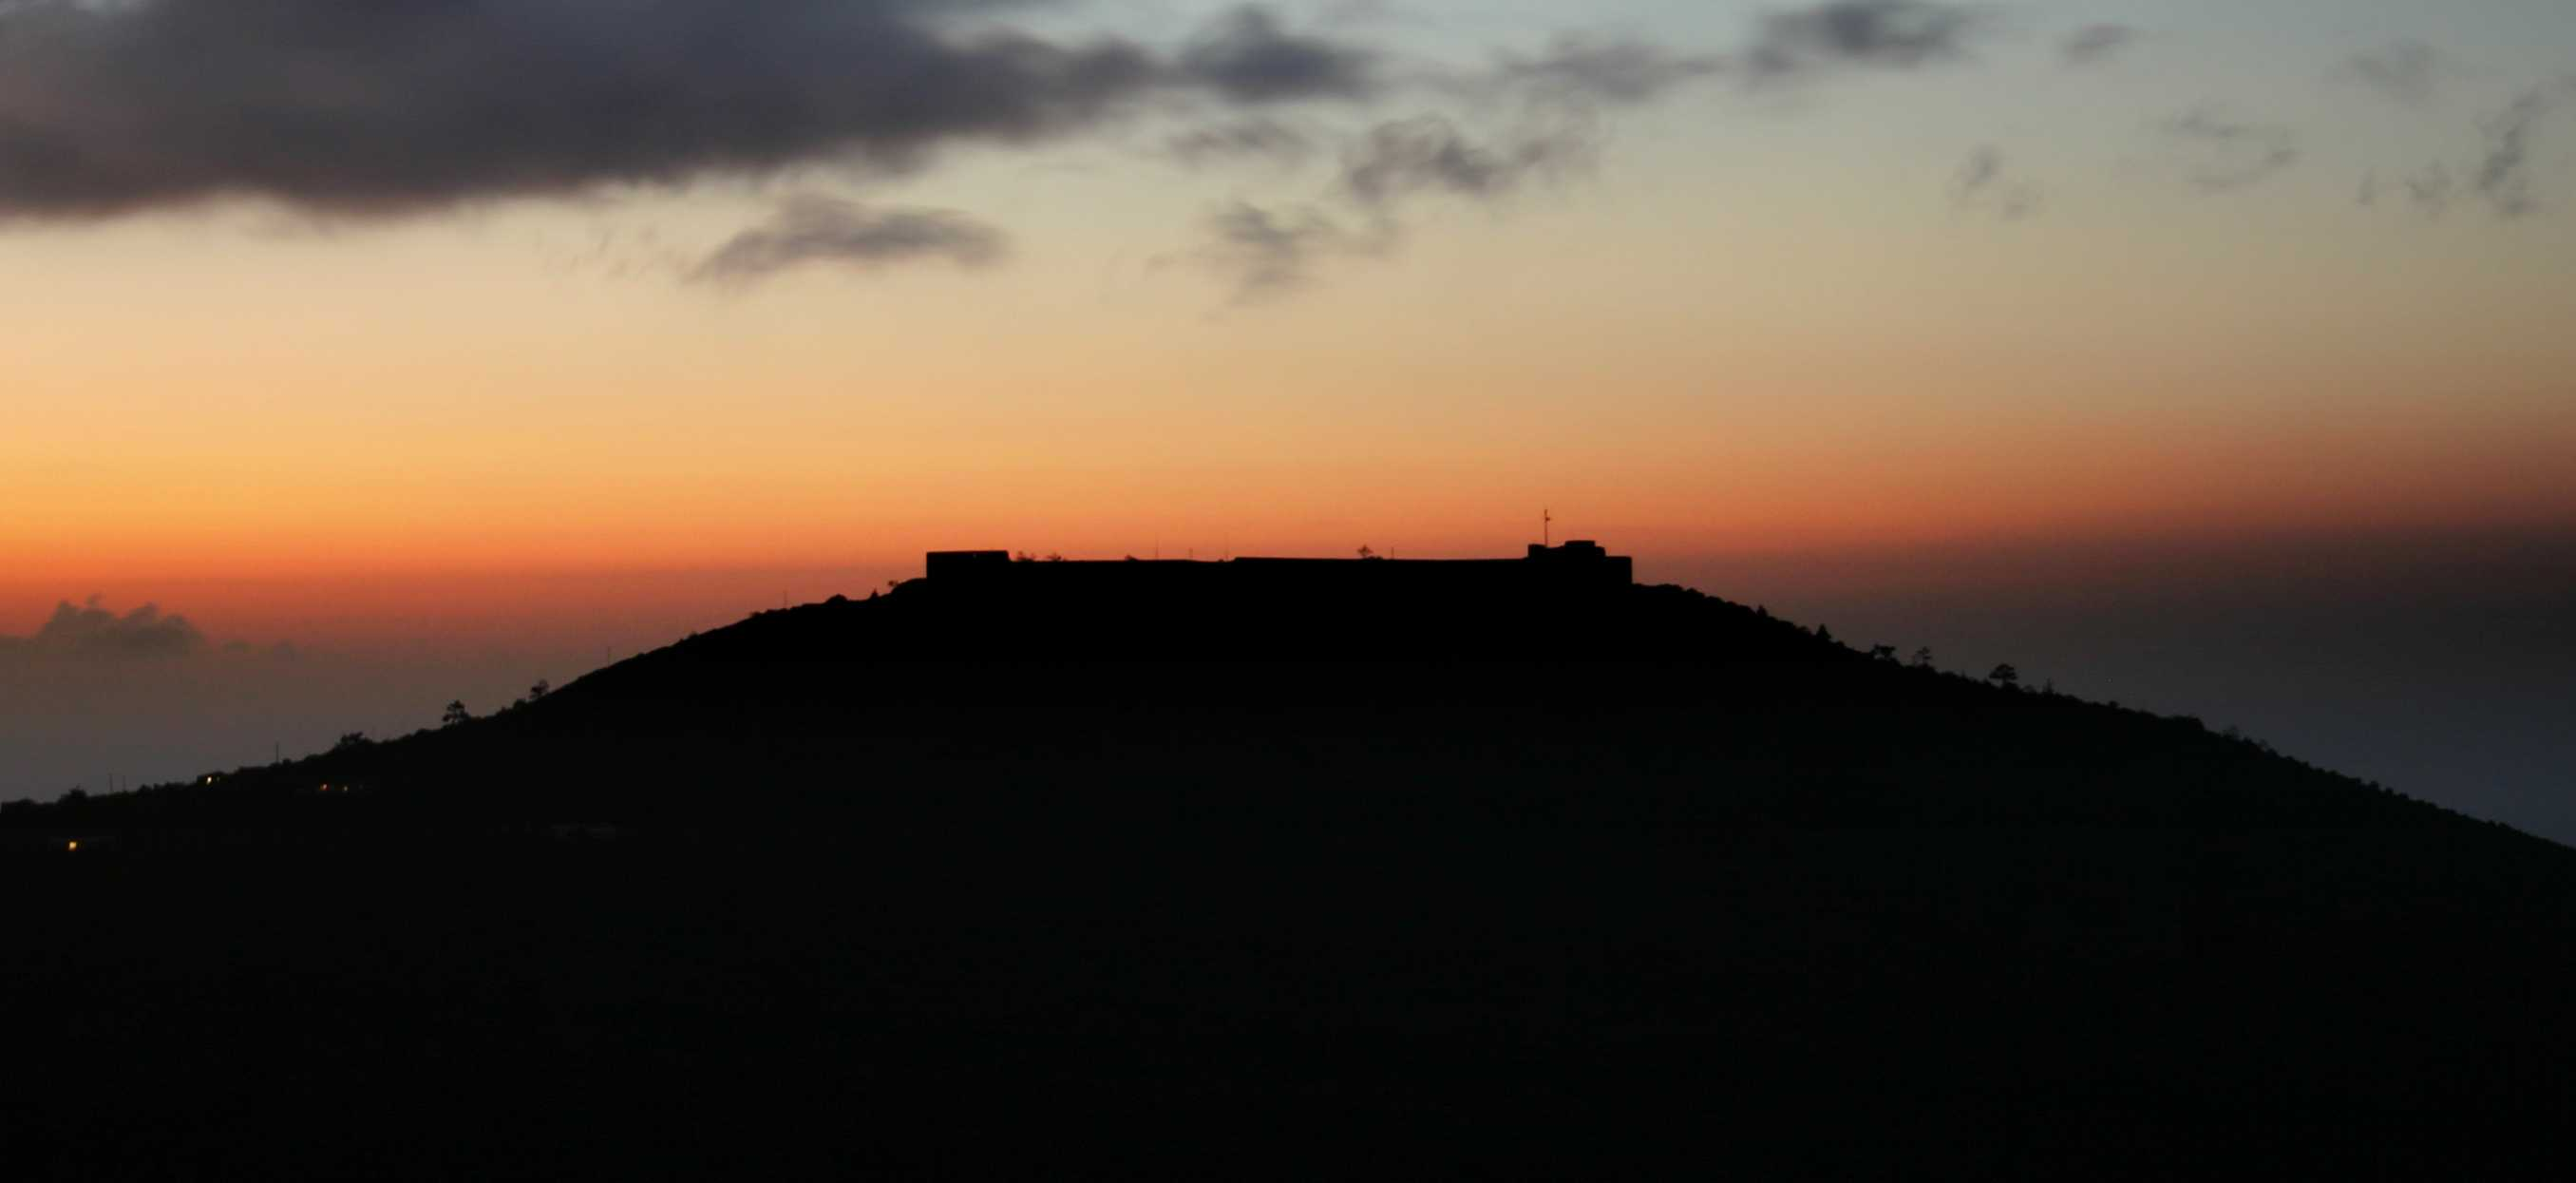 Sunset, silhouetting High Knoll Fort